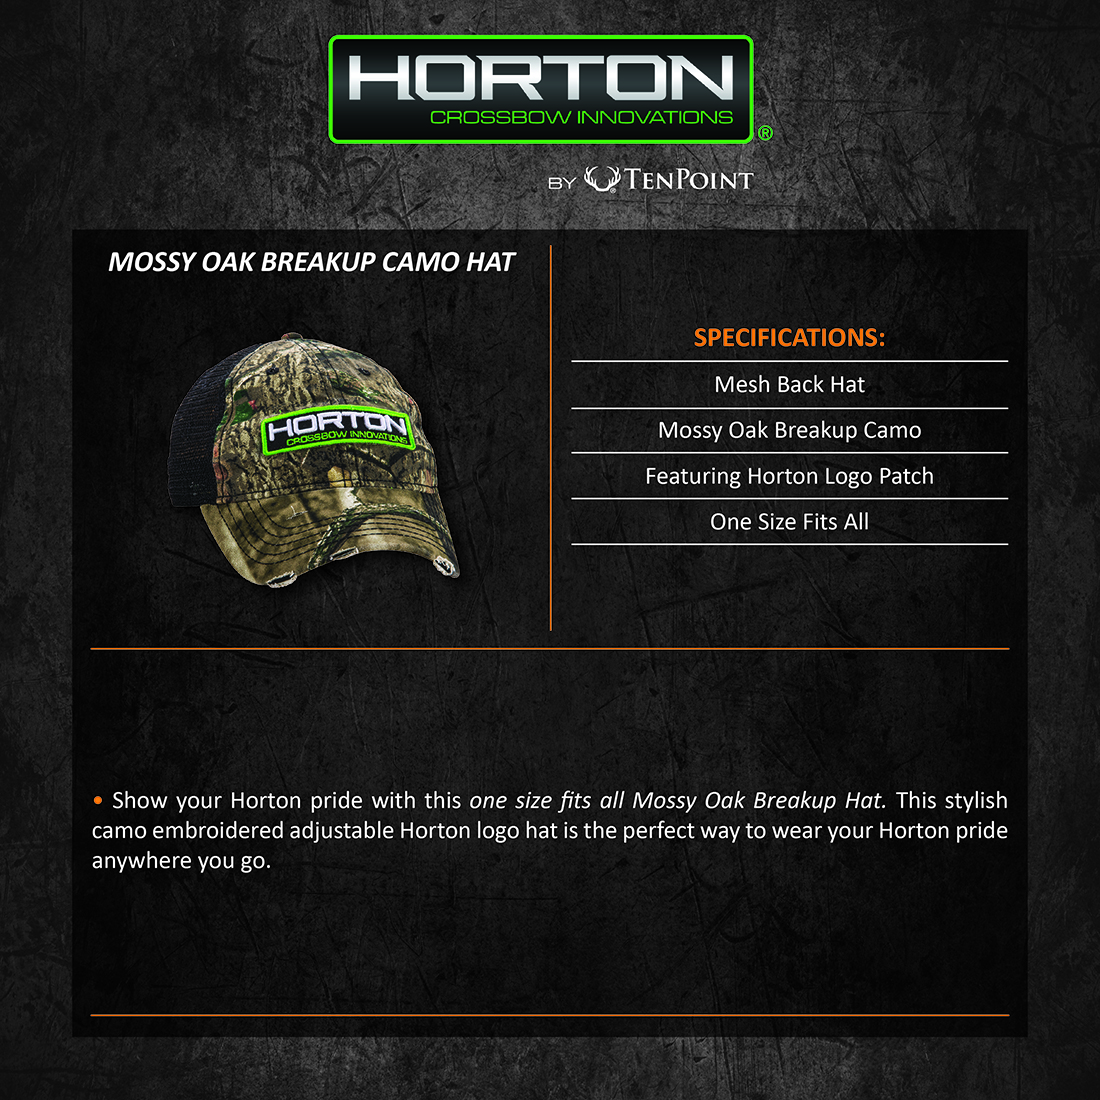 Horton_Crossbow_Camo_Hat_Product_Description